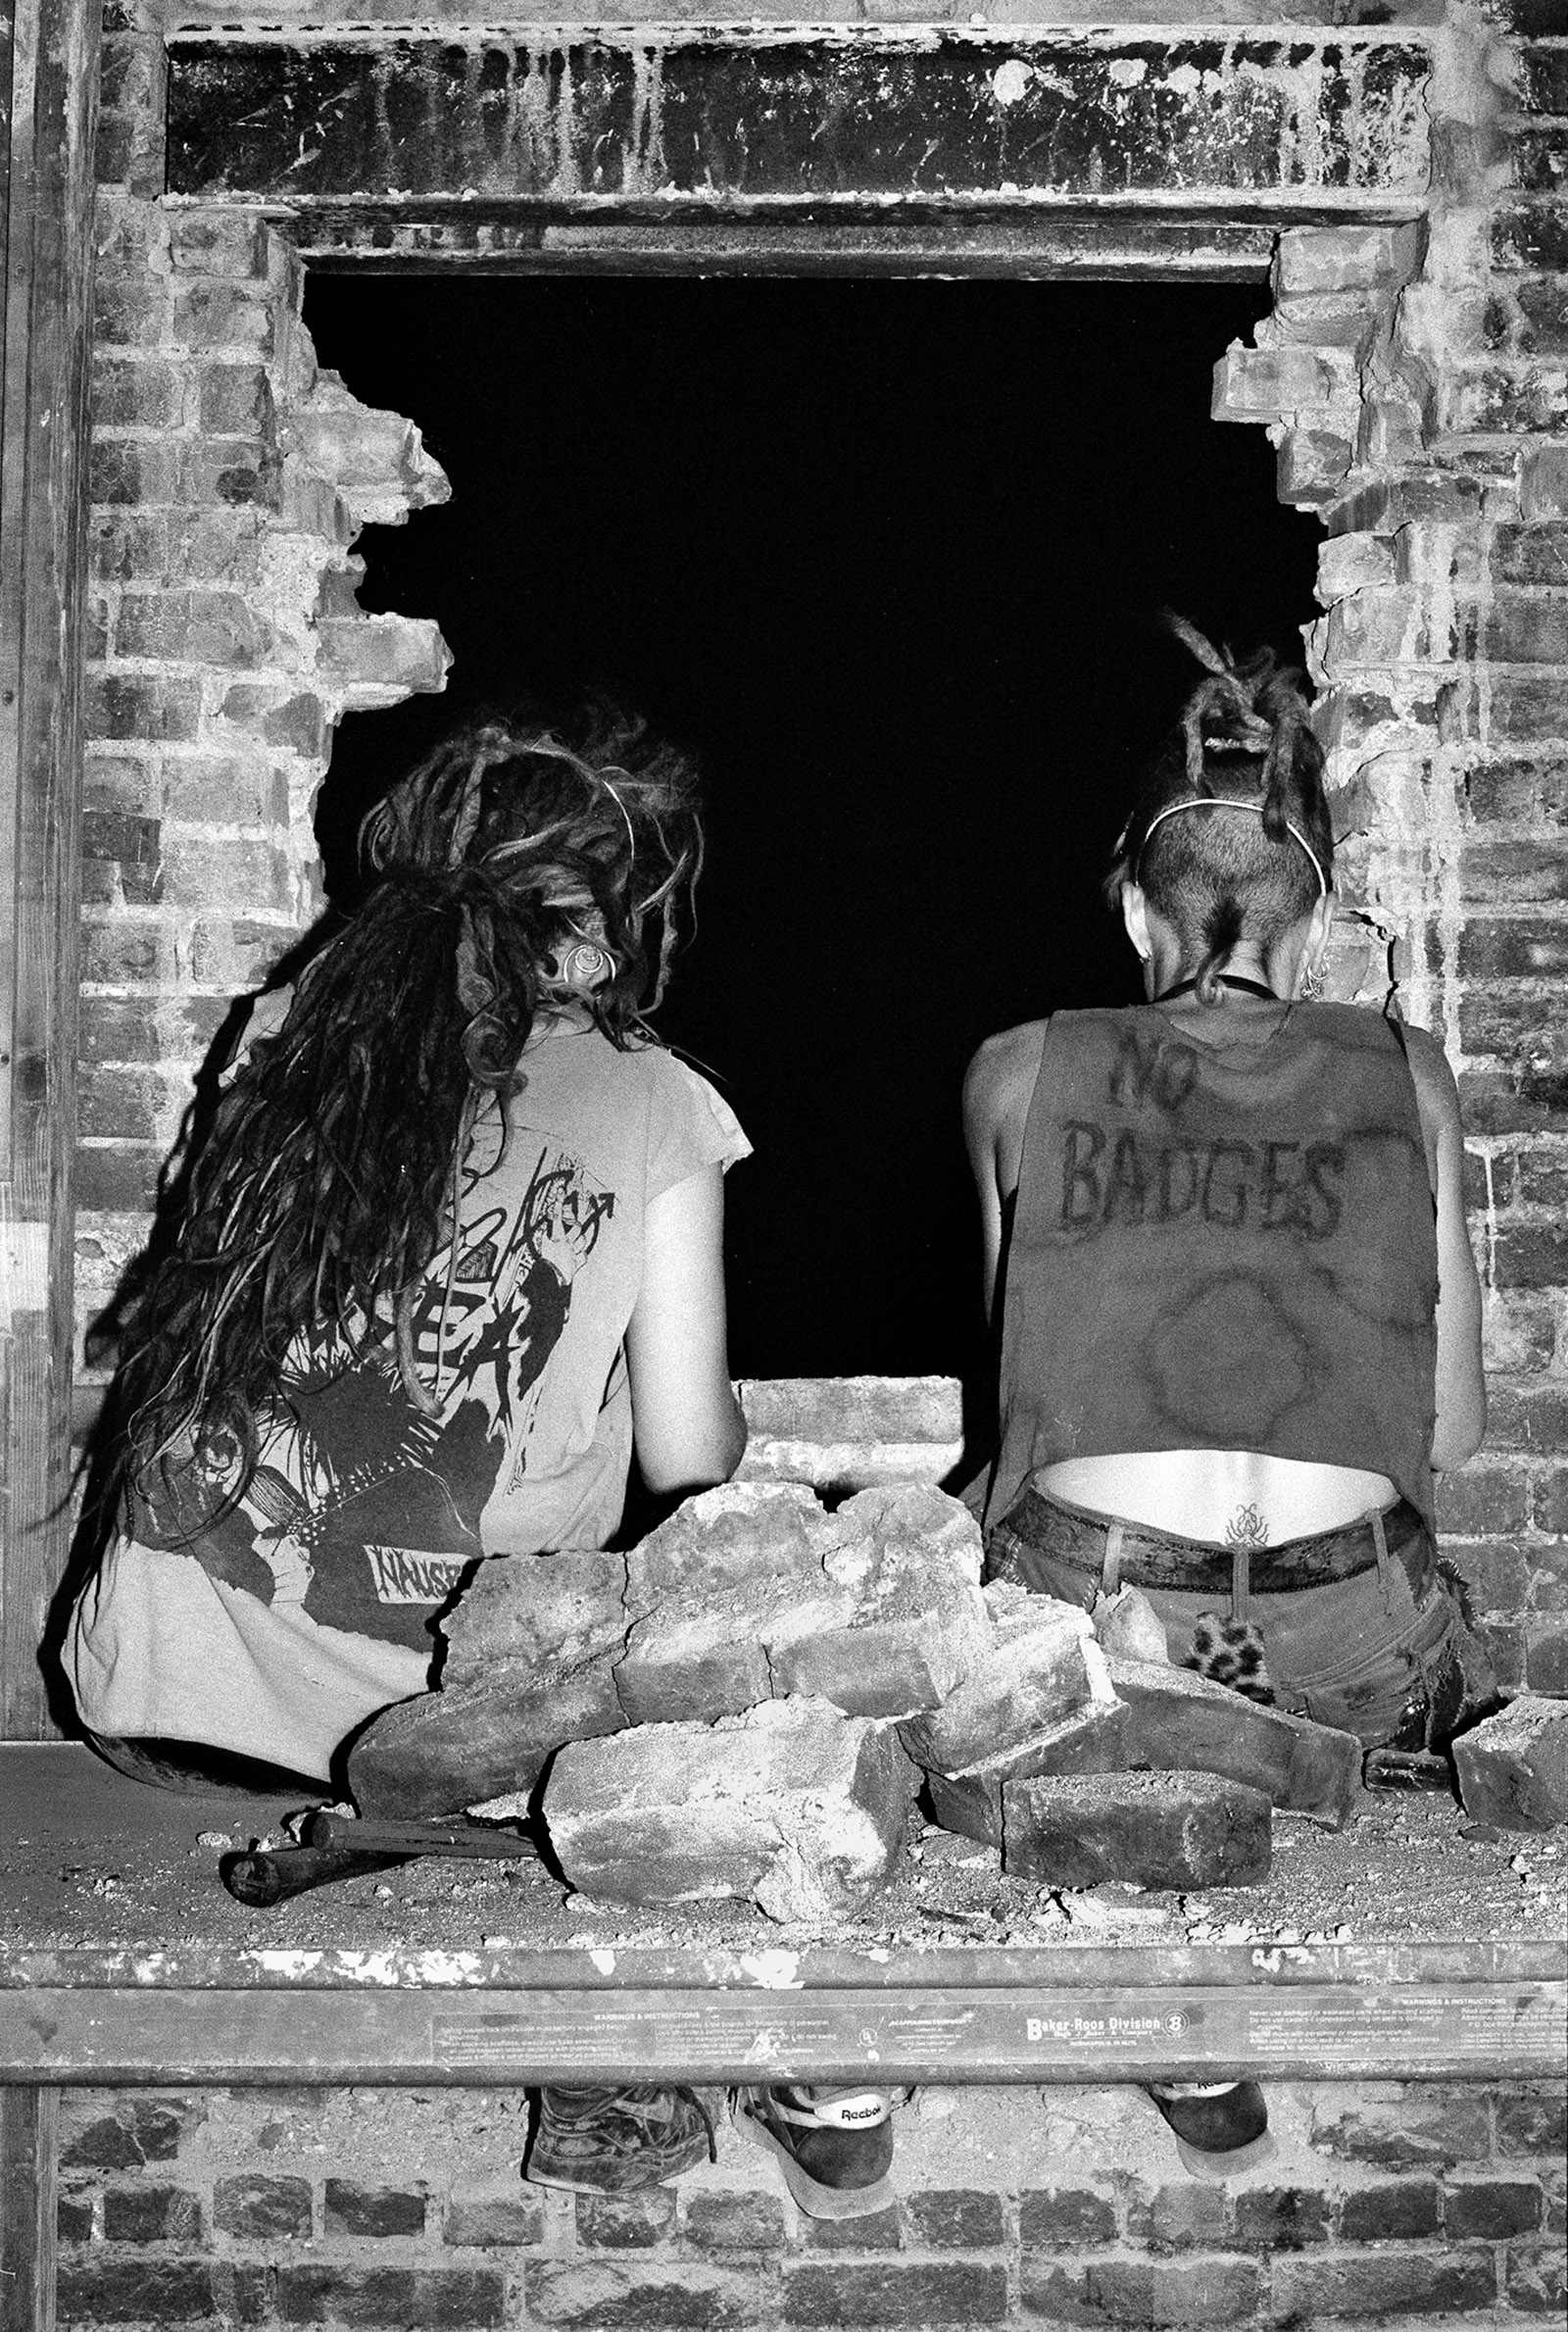 Photograph of squatters in the Lower East Side, 1994